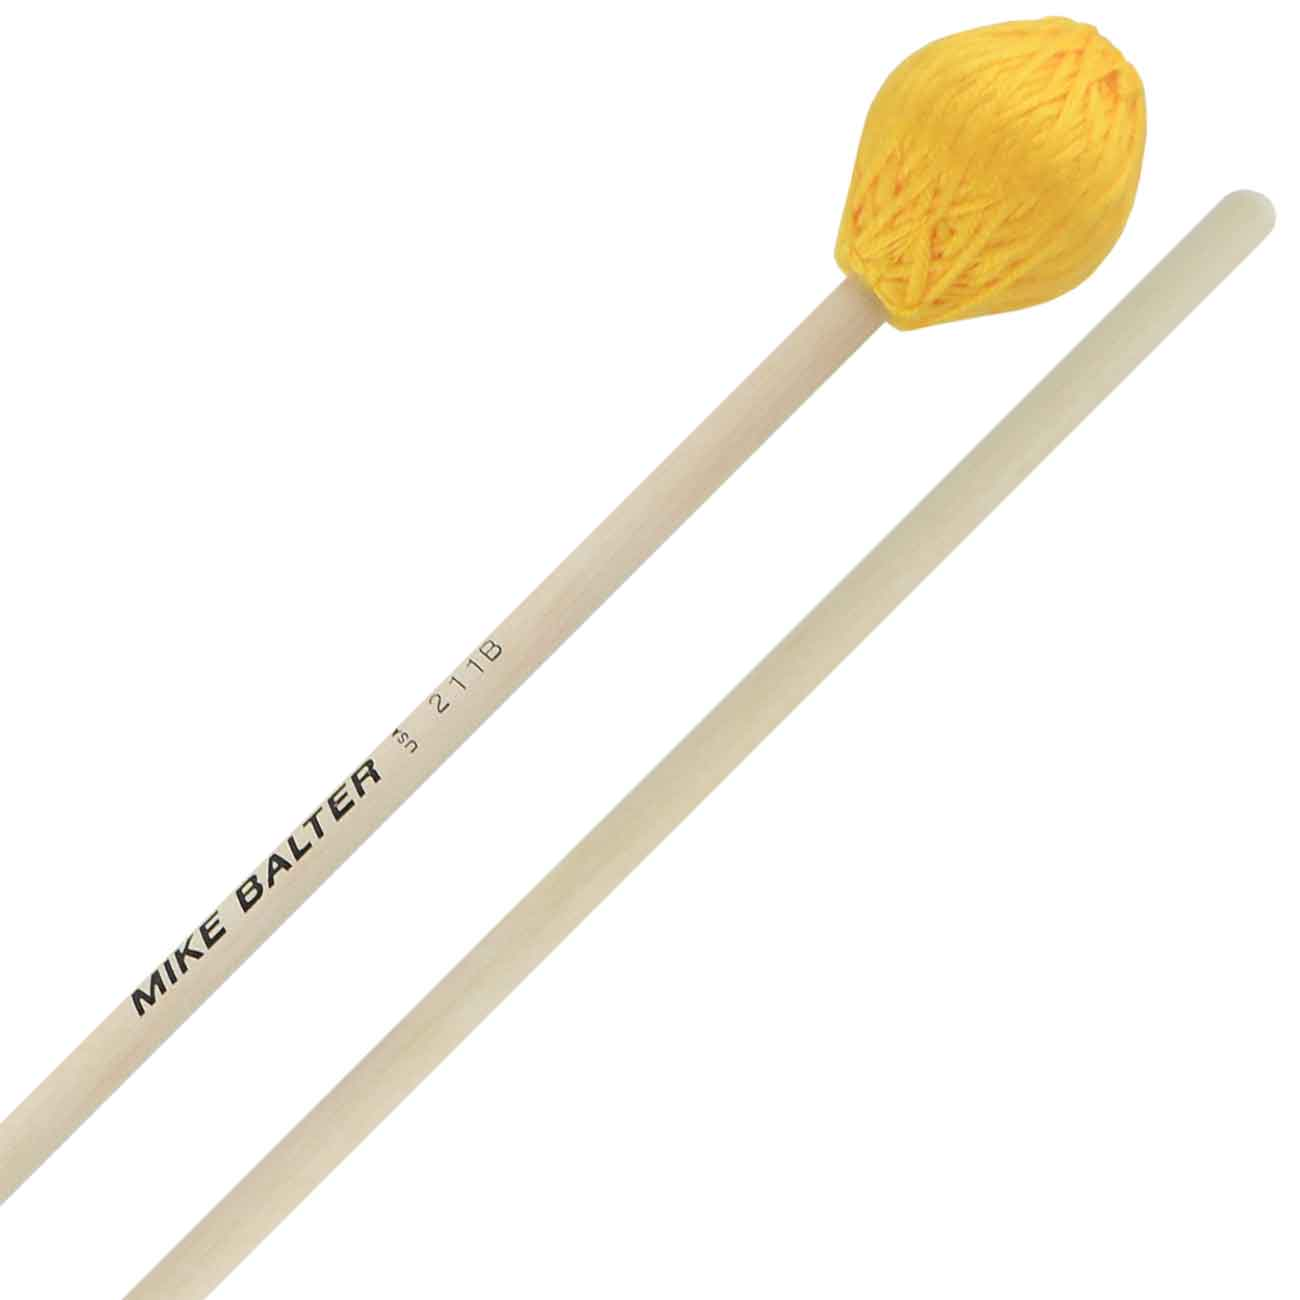 Mike Balter Chorale Series Hard Marimba Mallets with Birch Handles